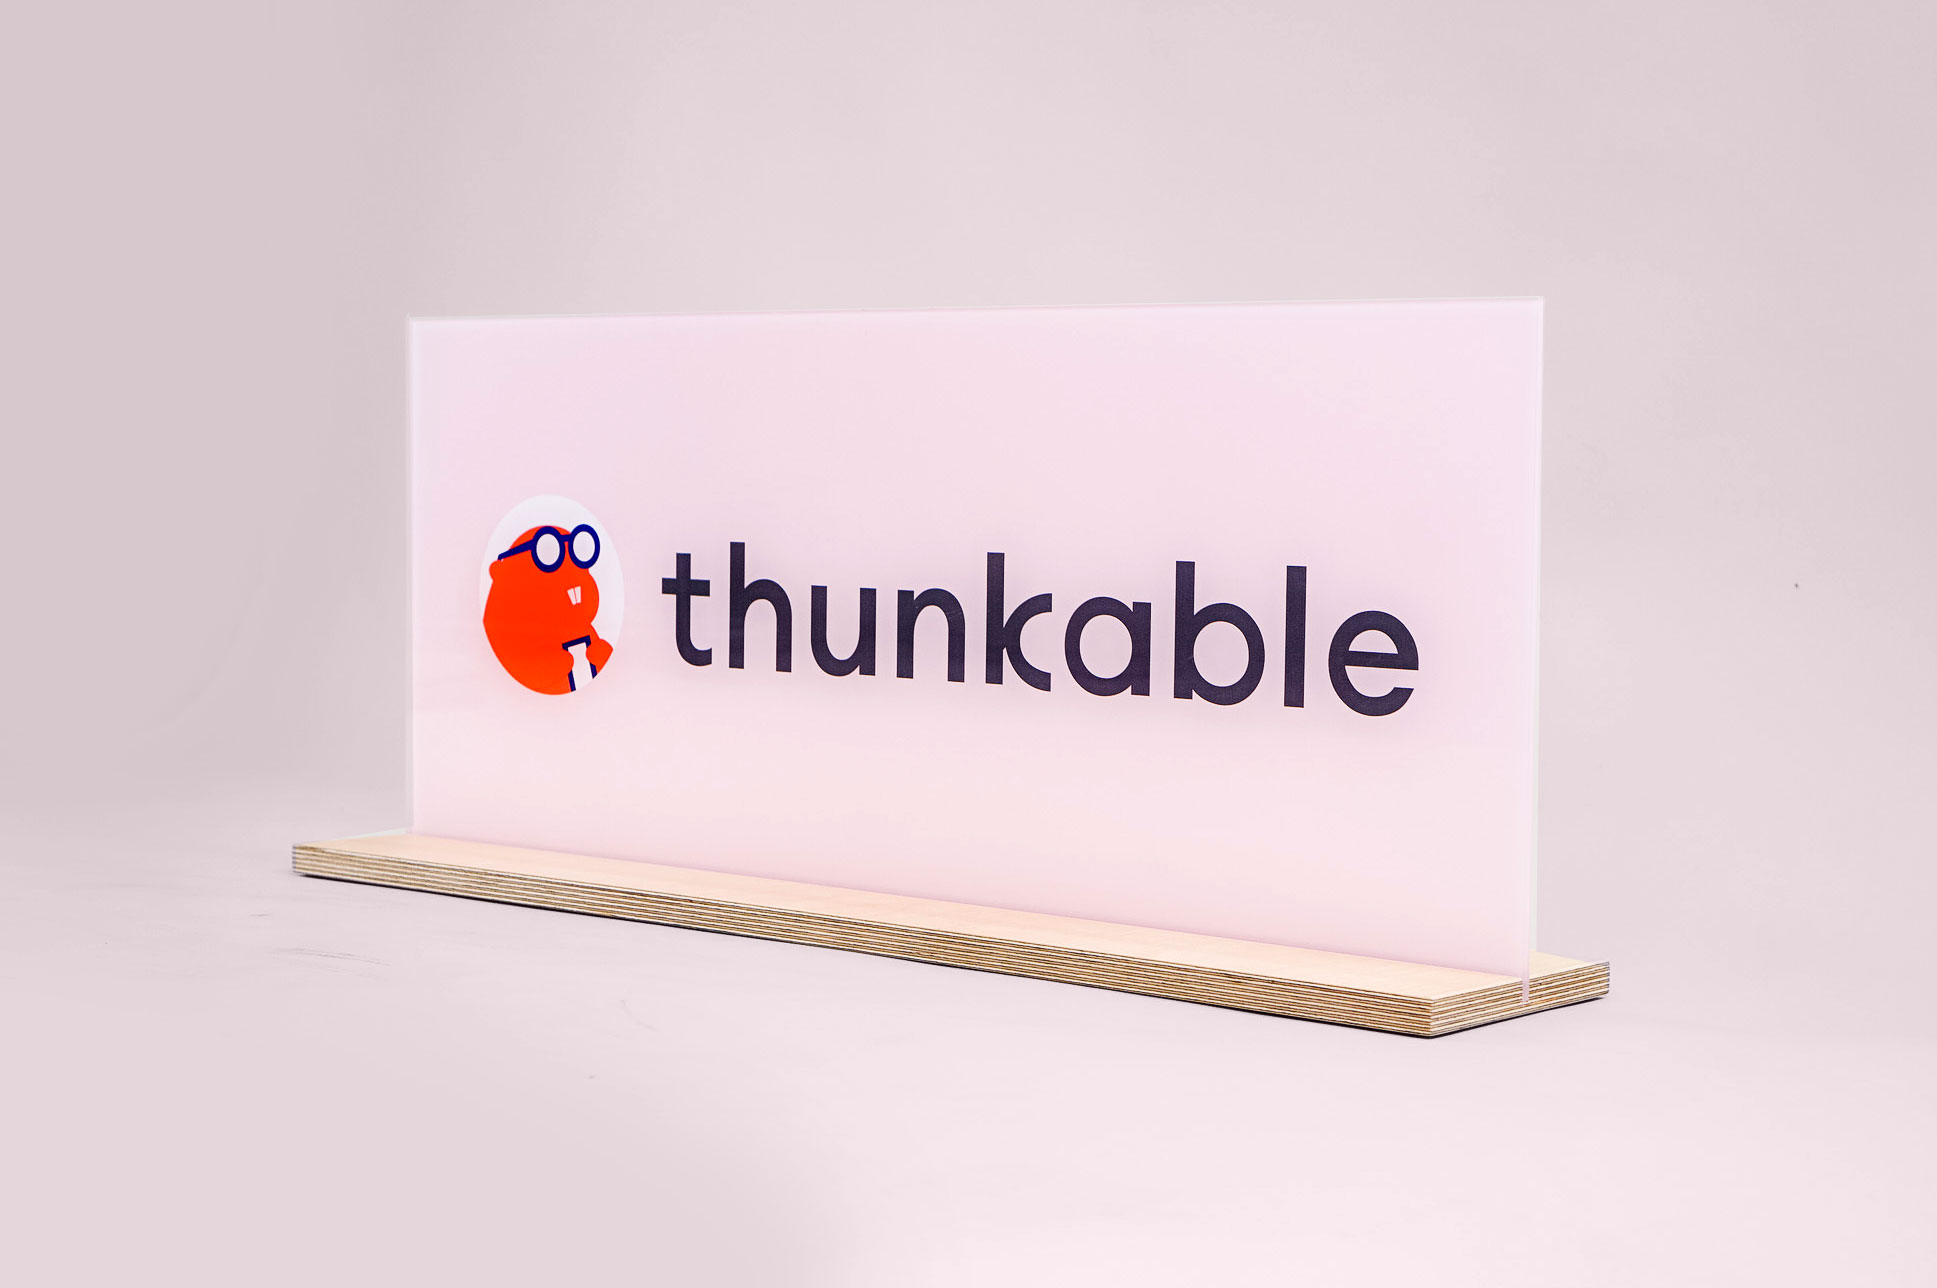 Glass-like, pink freestanding back printed sign for Thunkable, a cross-platform app builder that enables anyone to build their own native mobile apps.